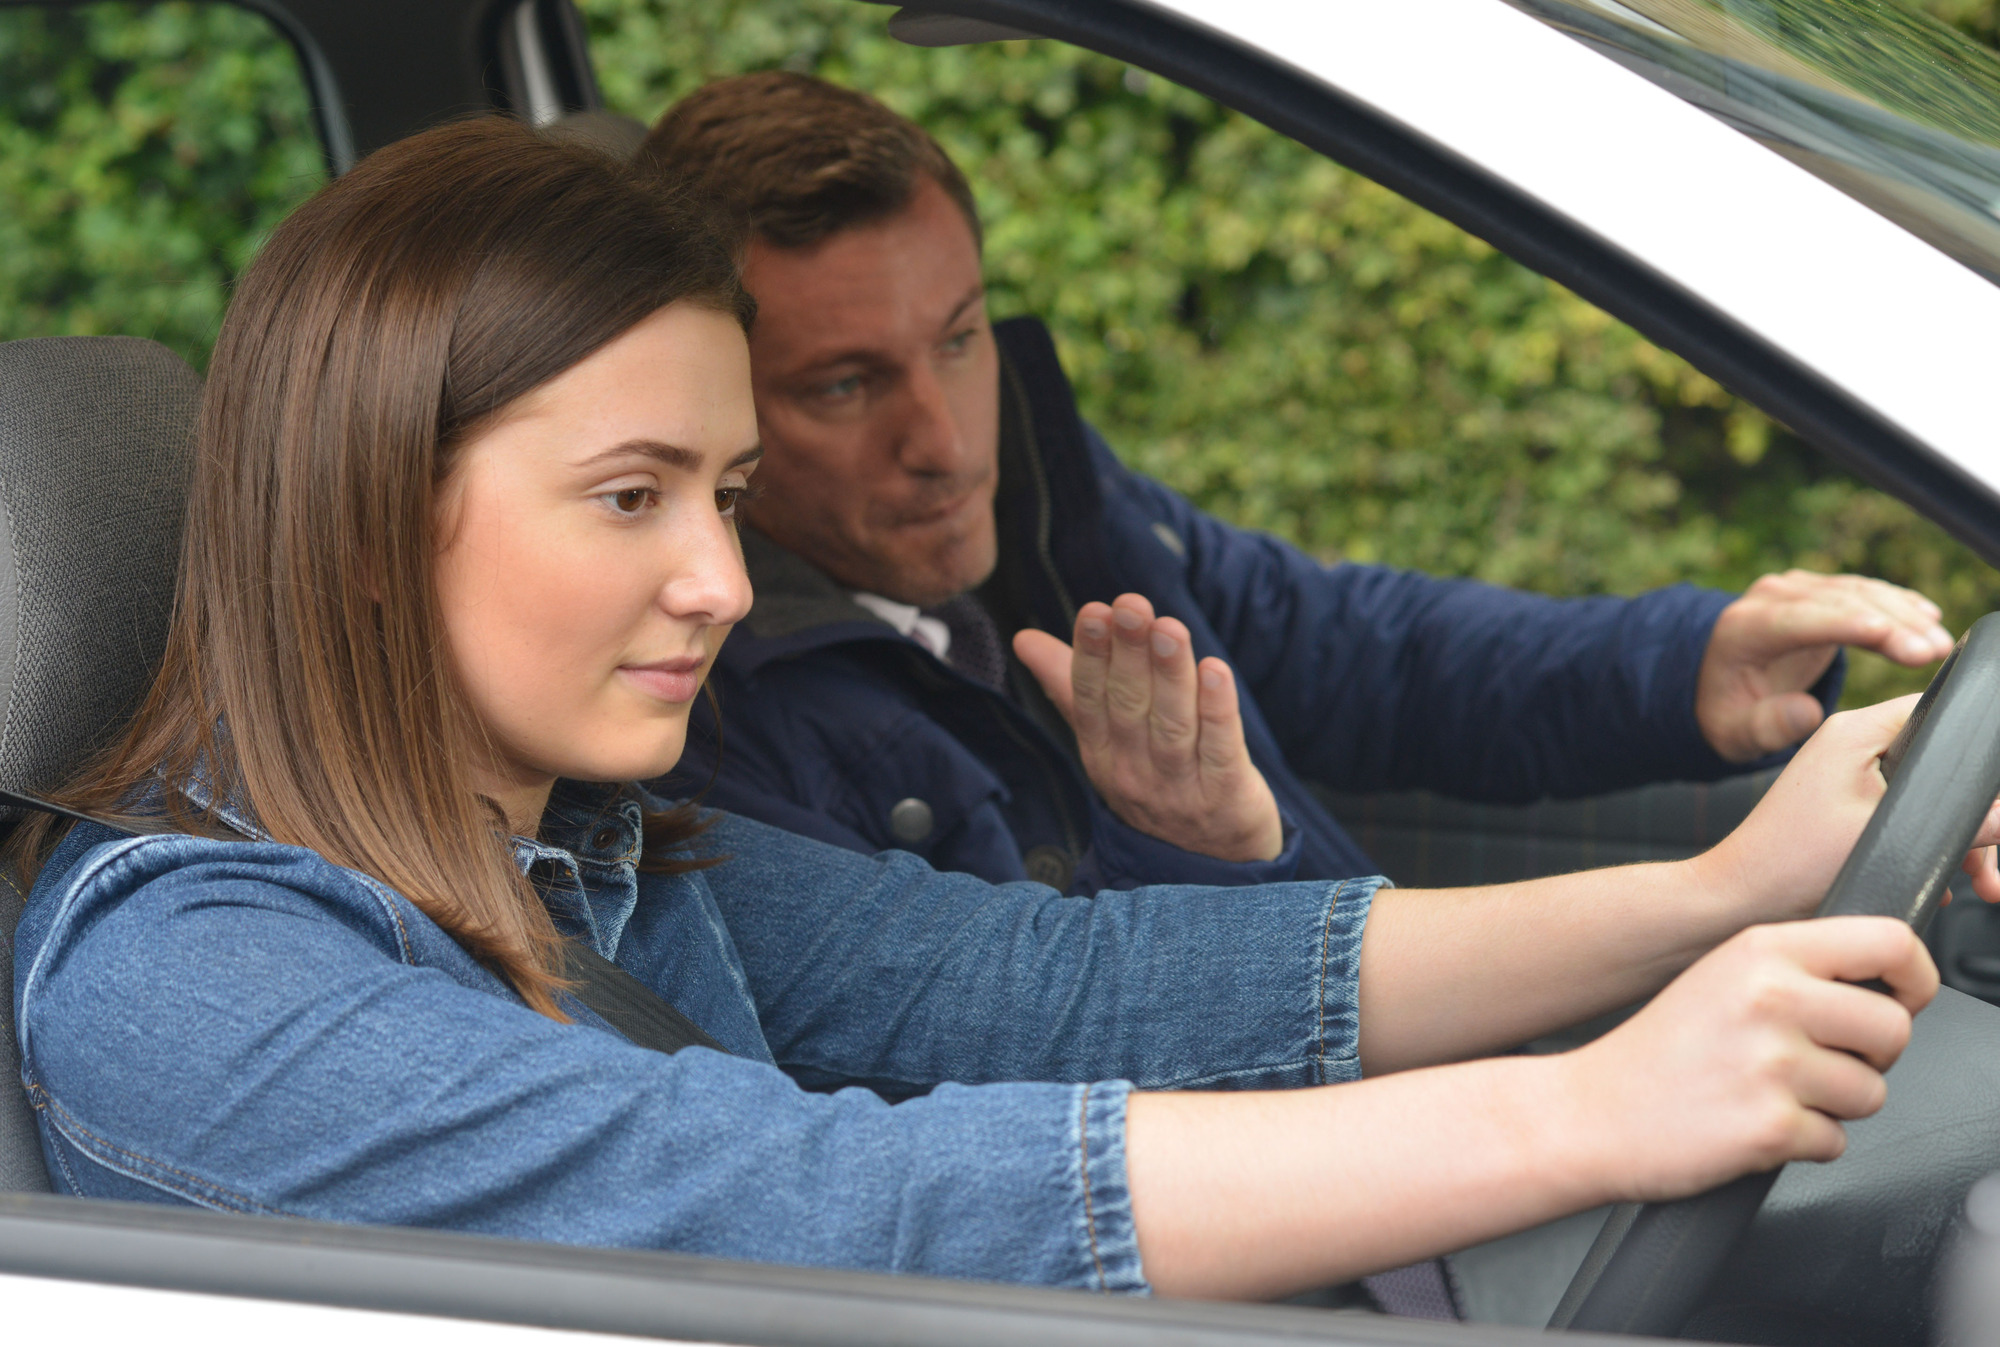 EastEnders spoilers: Bex Fowler seduces teacher Gethin Pryce during a driving lesson?